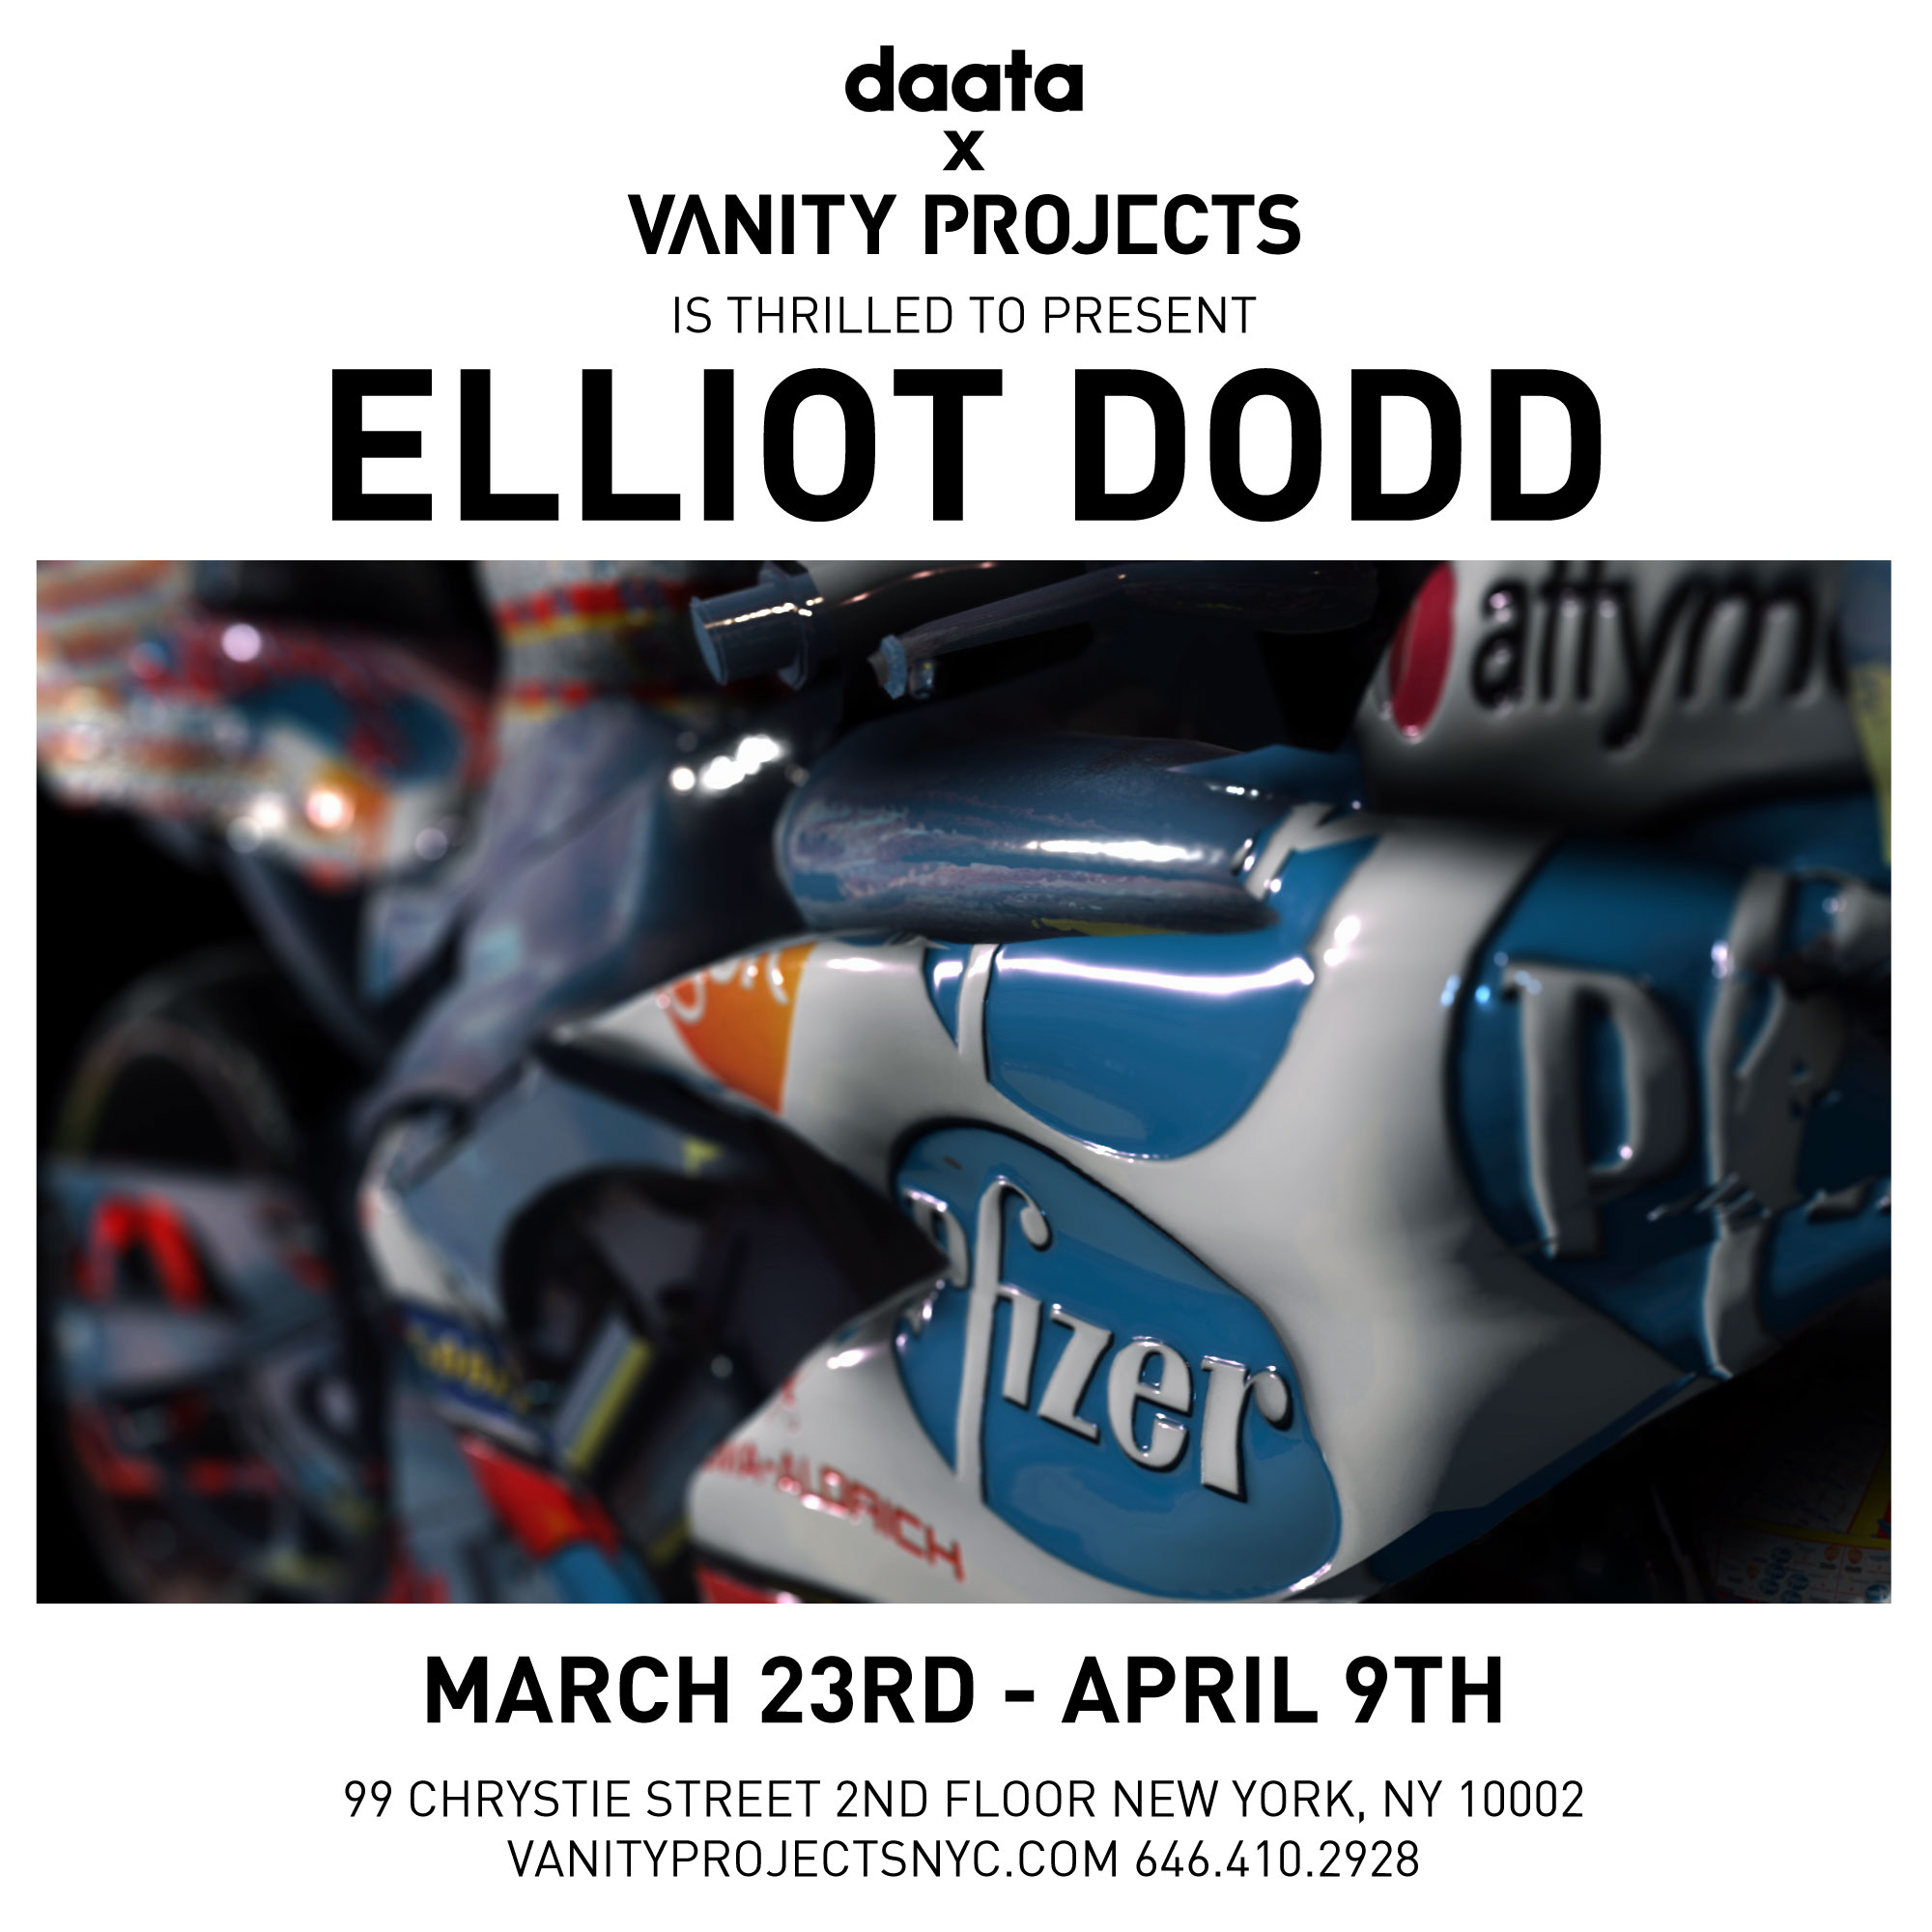 vp_daata_elliot_dodd_NYC.jpg